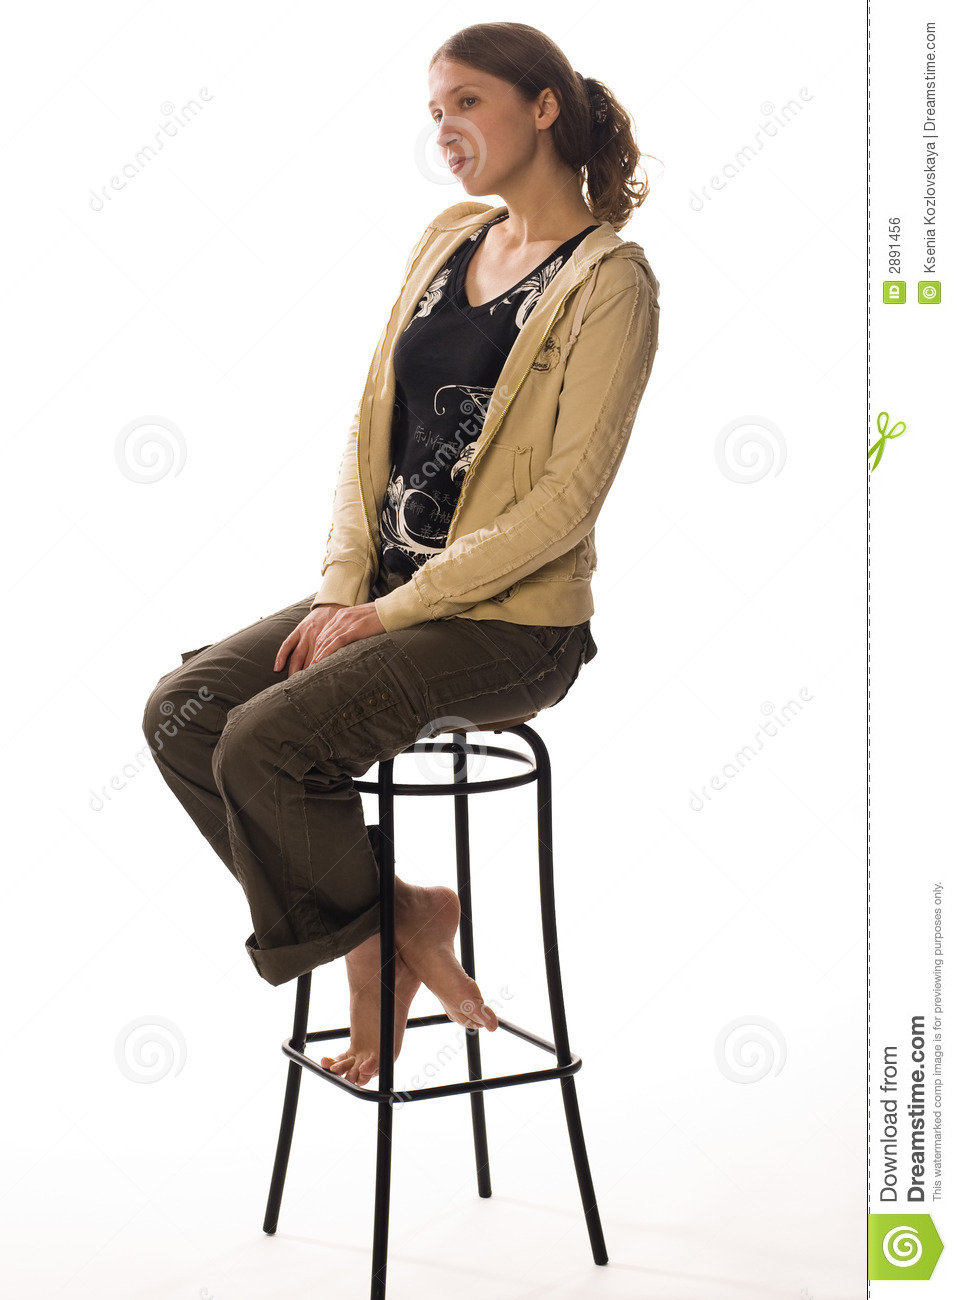 Sad Girl Sits On Stool Royalty Free Stock Image Image  : sad girl sits stool 2891456 from www.dreamstime.com size 957 x 1300 jpeg 179kB